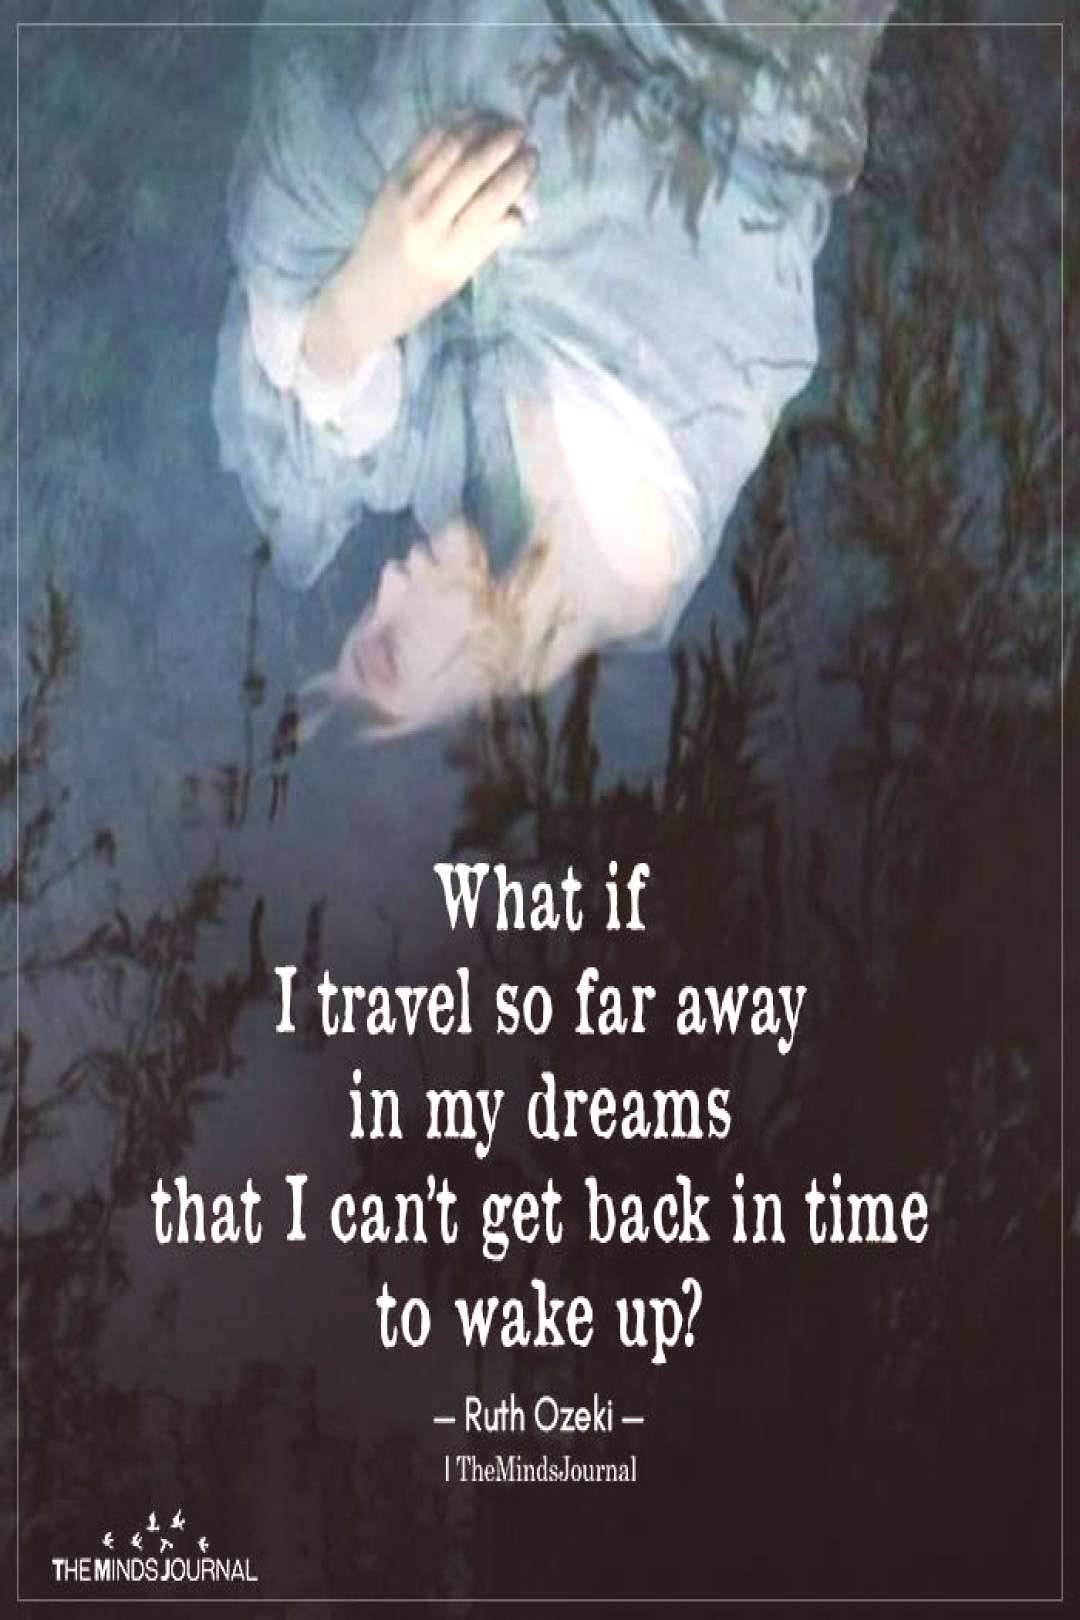 What if I travel so far away in my dreams that I can't get back in time to wake up?quot —Ruth Ozek